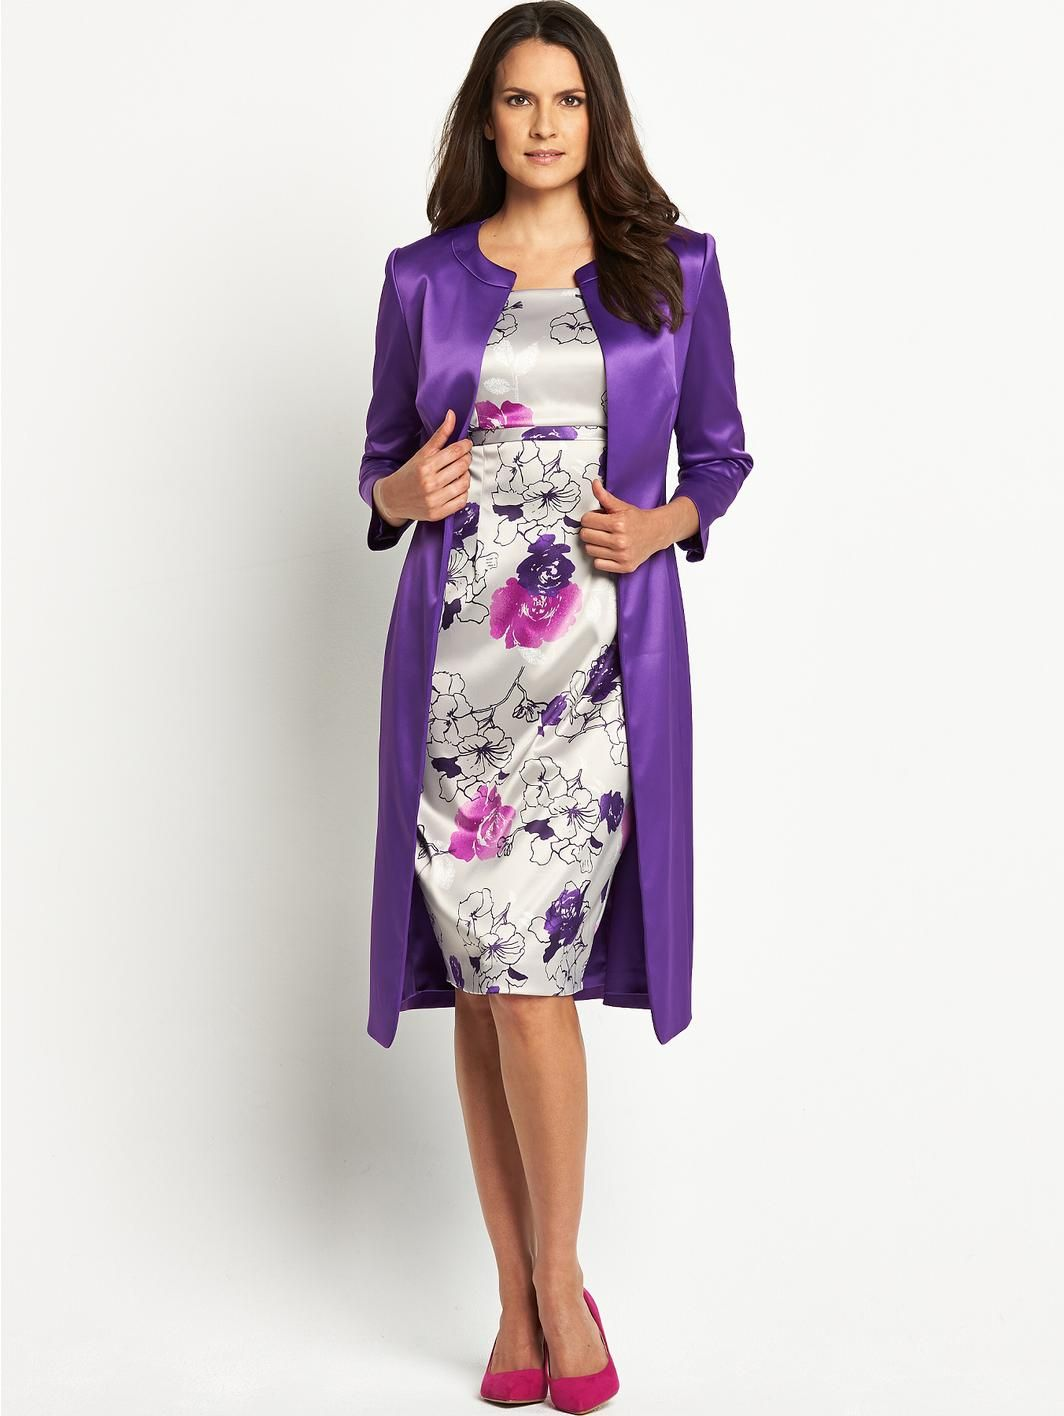 Jacquard Dress and Coat Suit, http://www.isme.com/berkertex ...